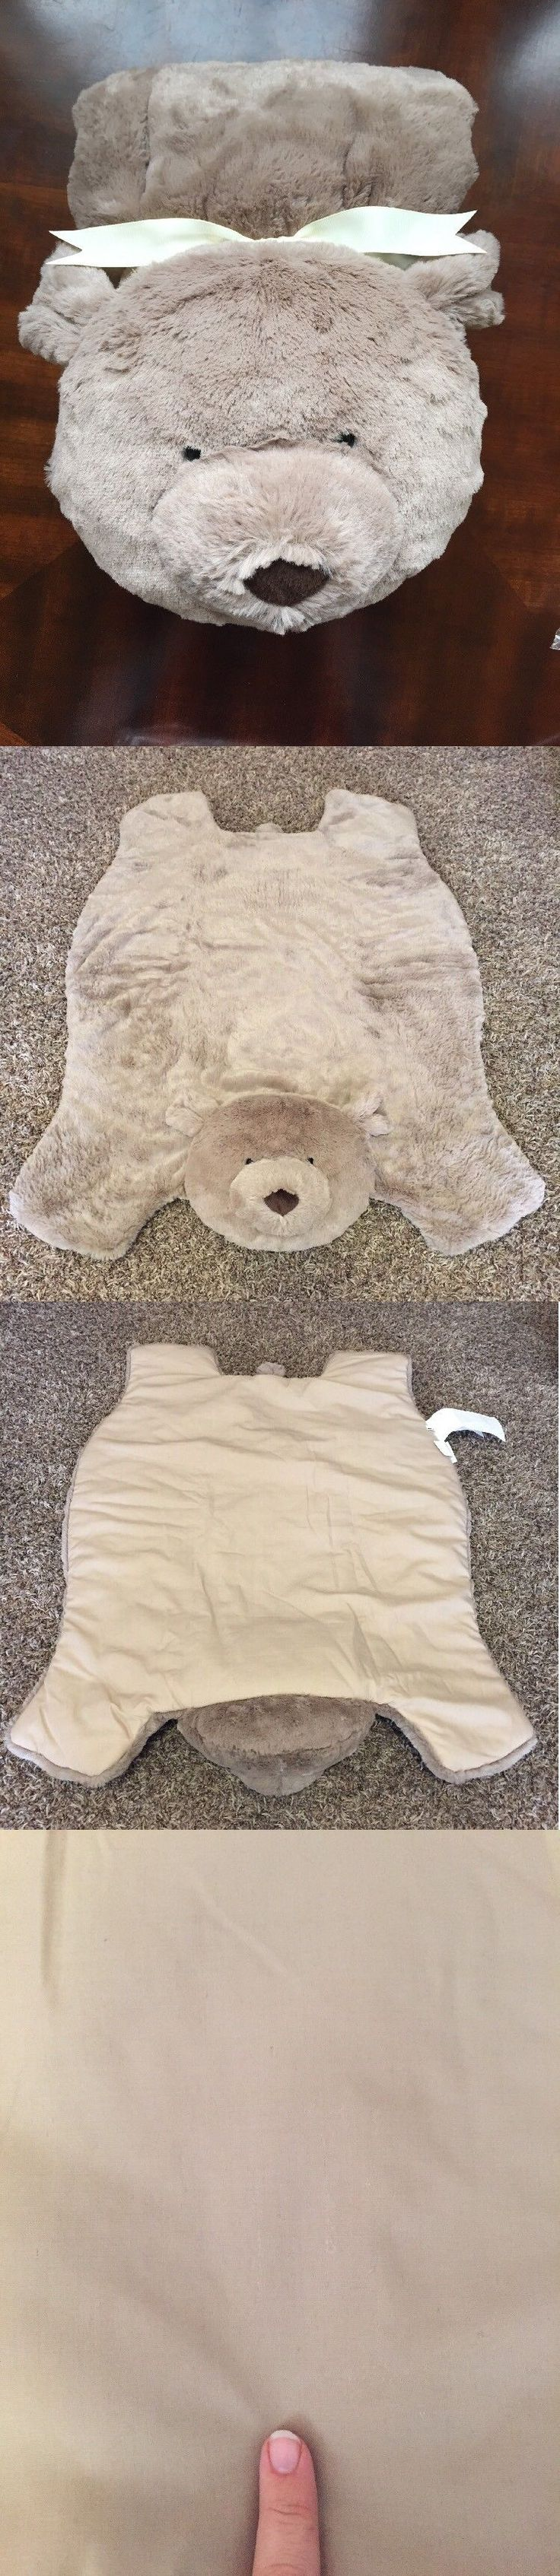 Baby Gyms and Play Mats 19069: New Pottery Barn Kids Baby Bear Plush Play Mat Brown -> BUY IT NOW ONLY: $35.99 on eBay!